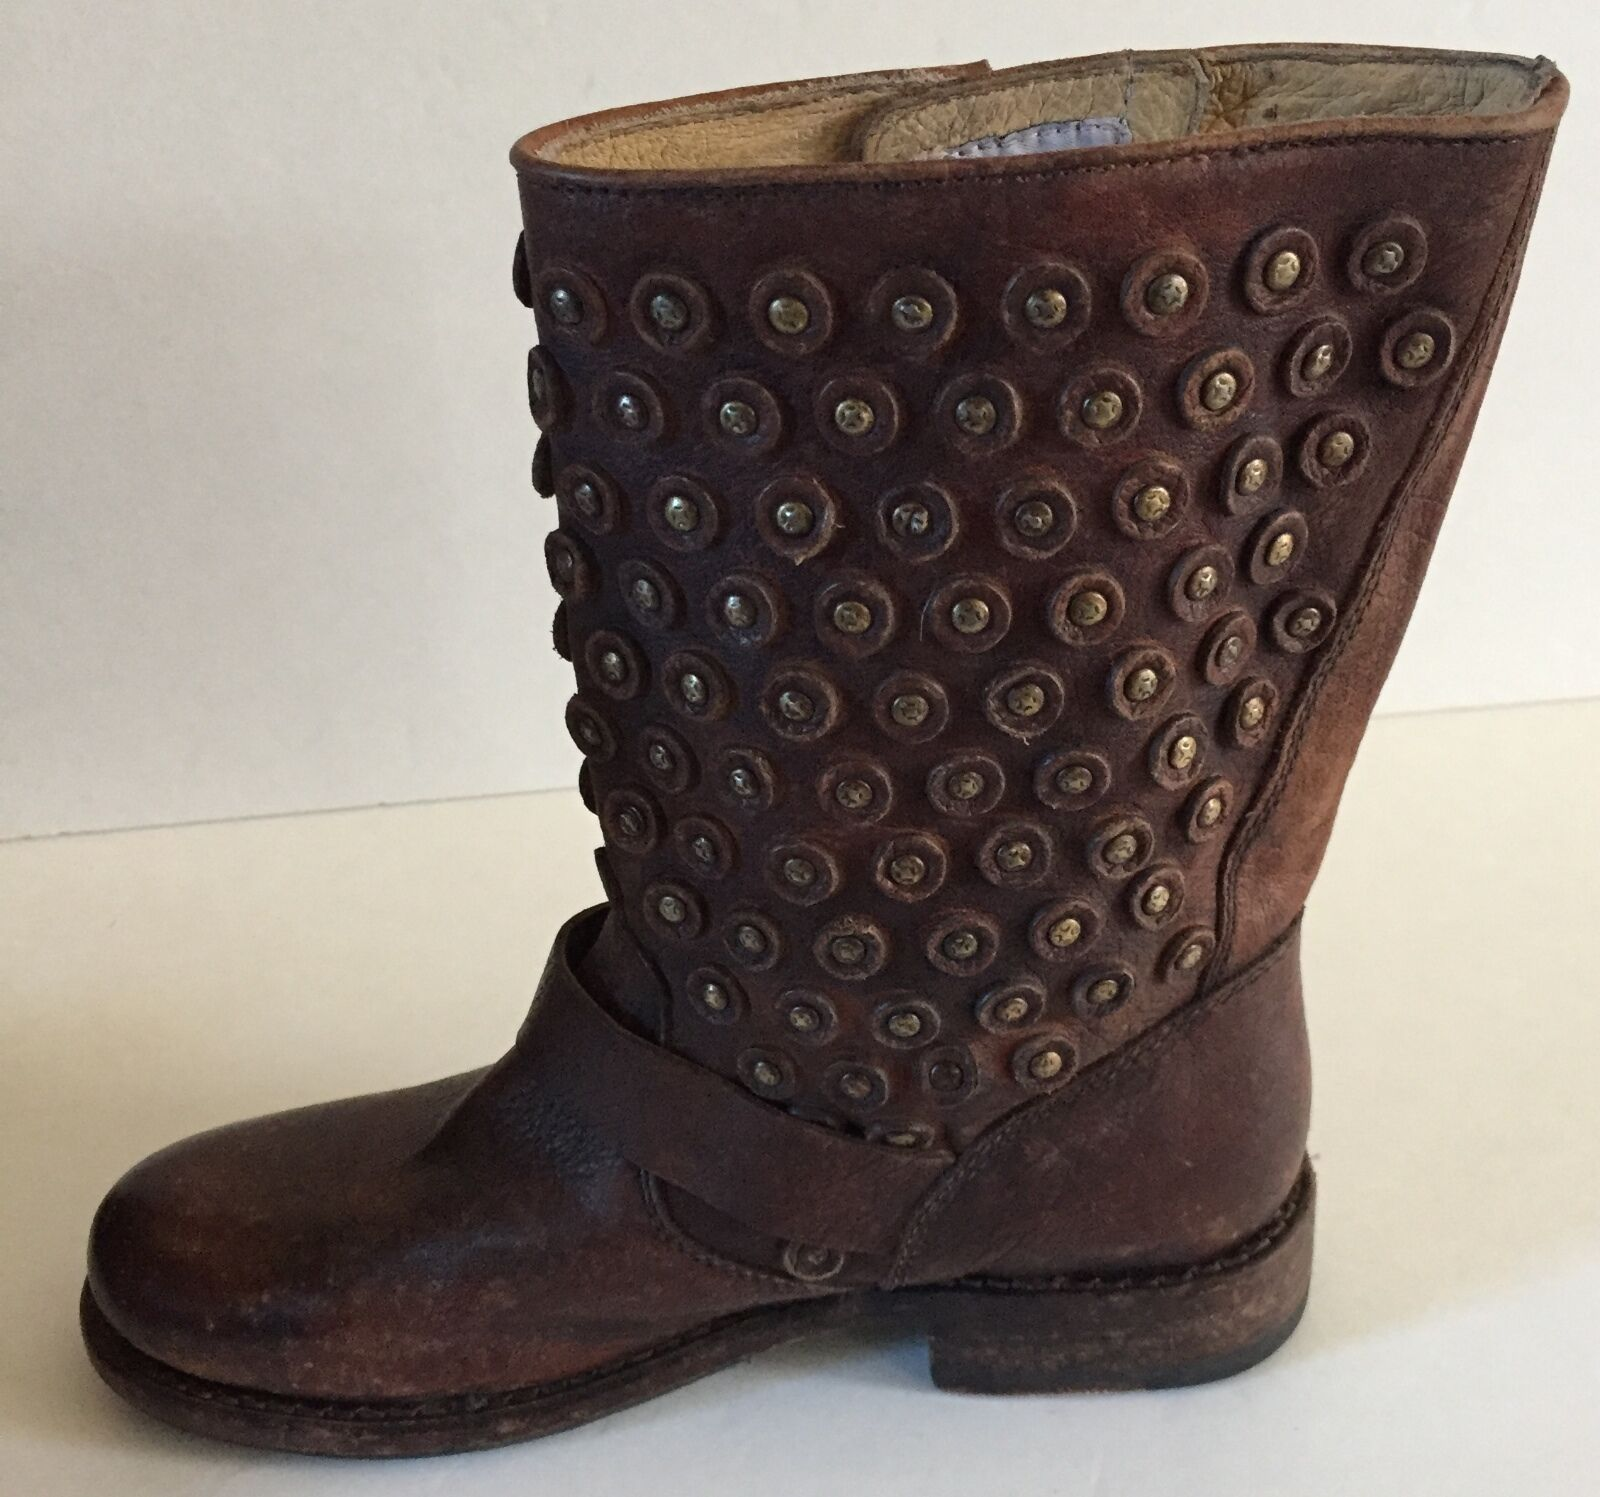 Frye 'Jenna Leather Disc Short' Antiqued Brown Leather 'Jenna Boots size 5.5 4d88cc